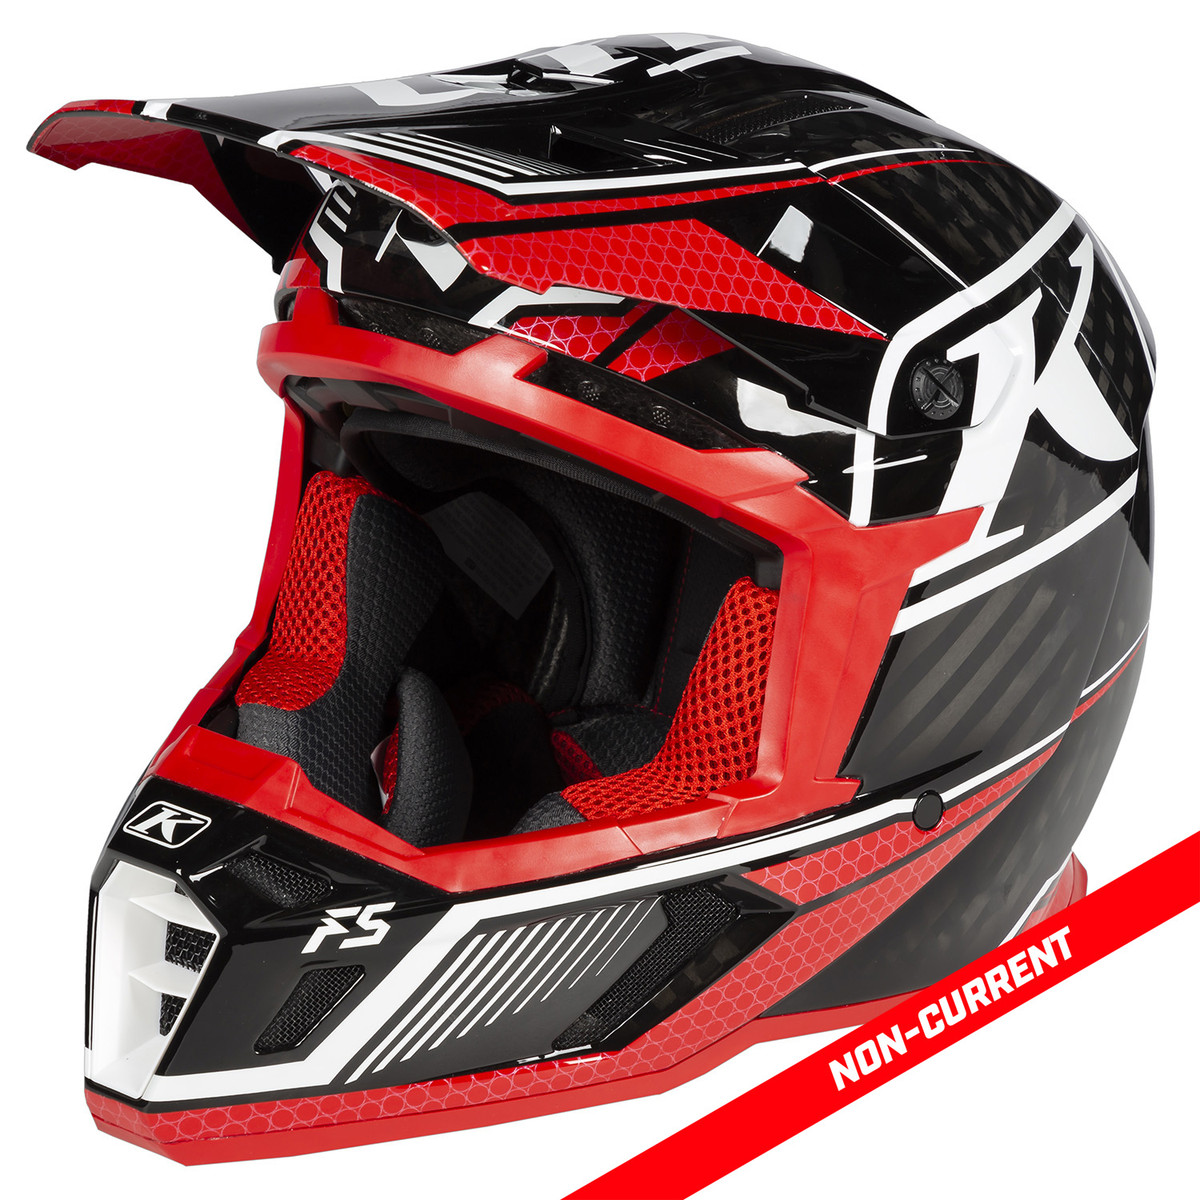 9f58194c7c7ac7 New 2019 Women's Snowmobile Gear | KLIM